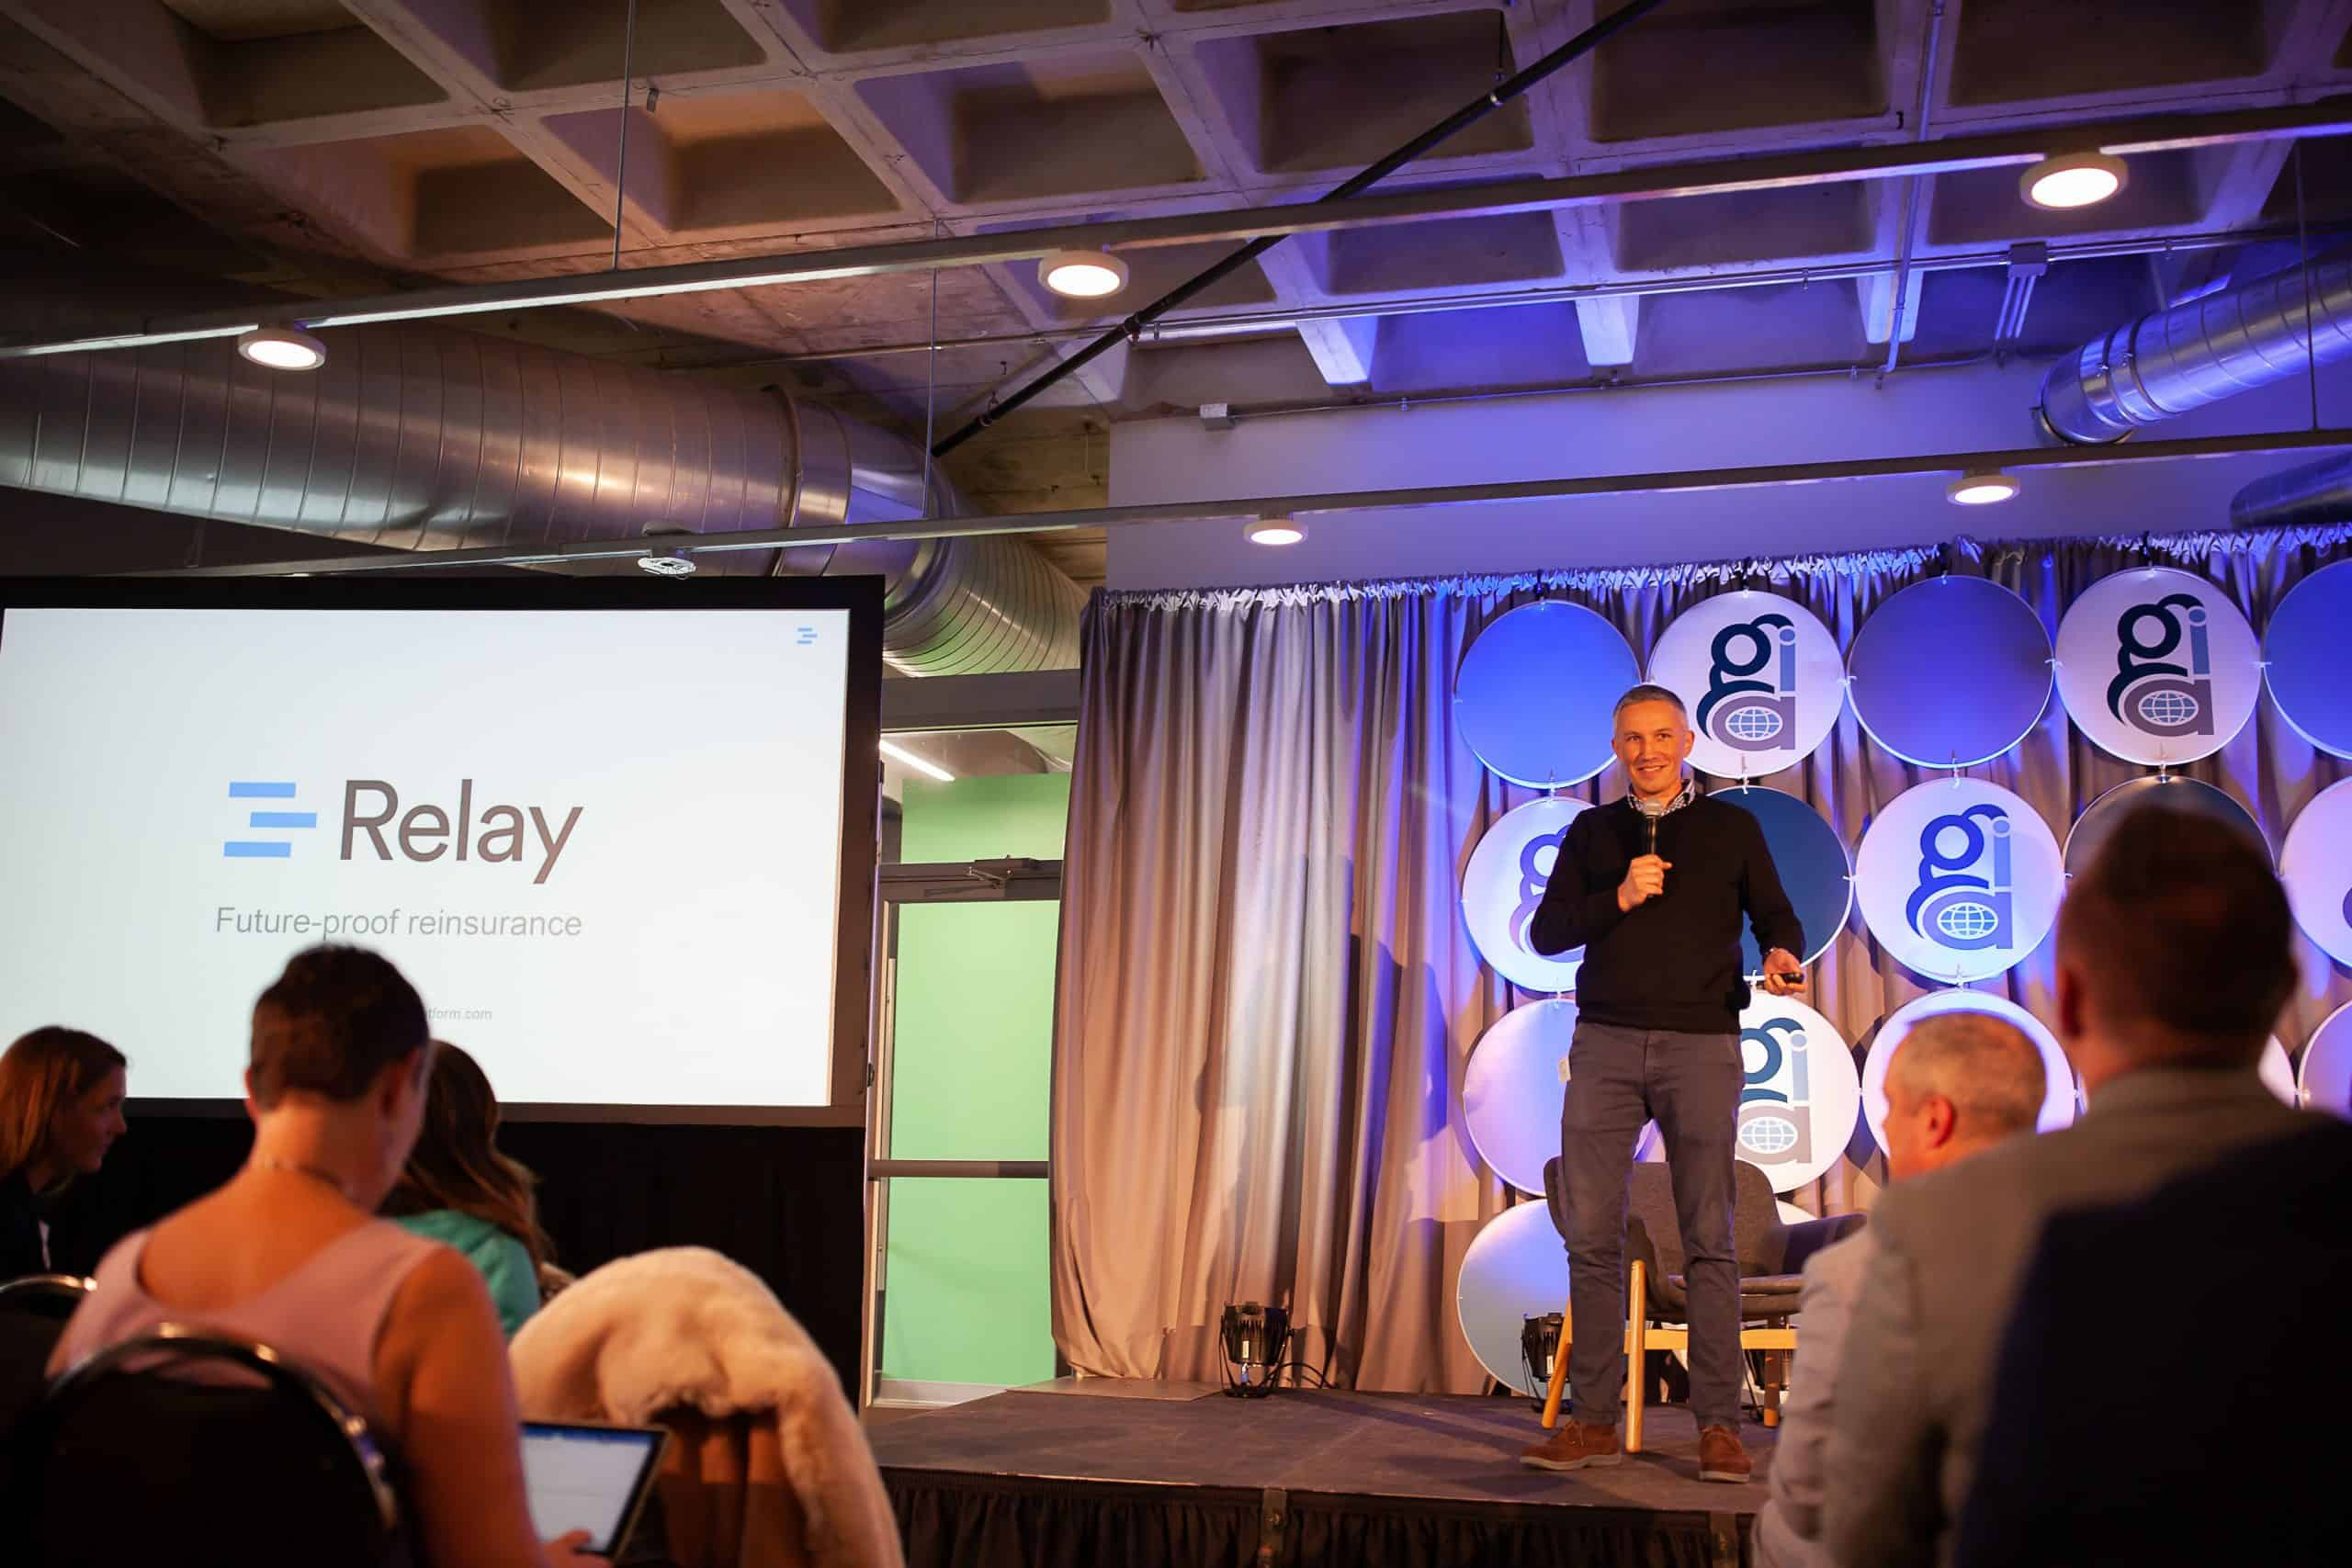 The brief history of Relay Platform: From deep dive with AmFam to spinning out and closing $3M in funding